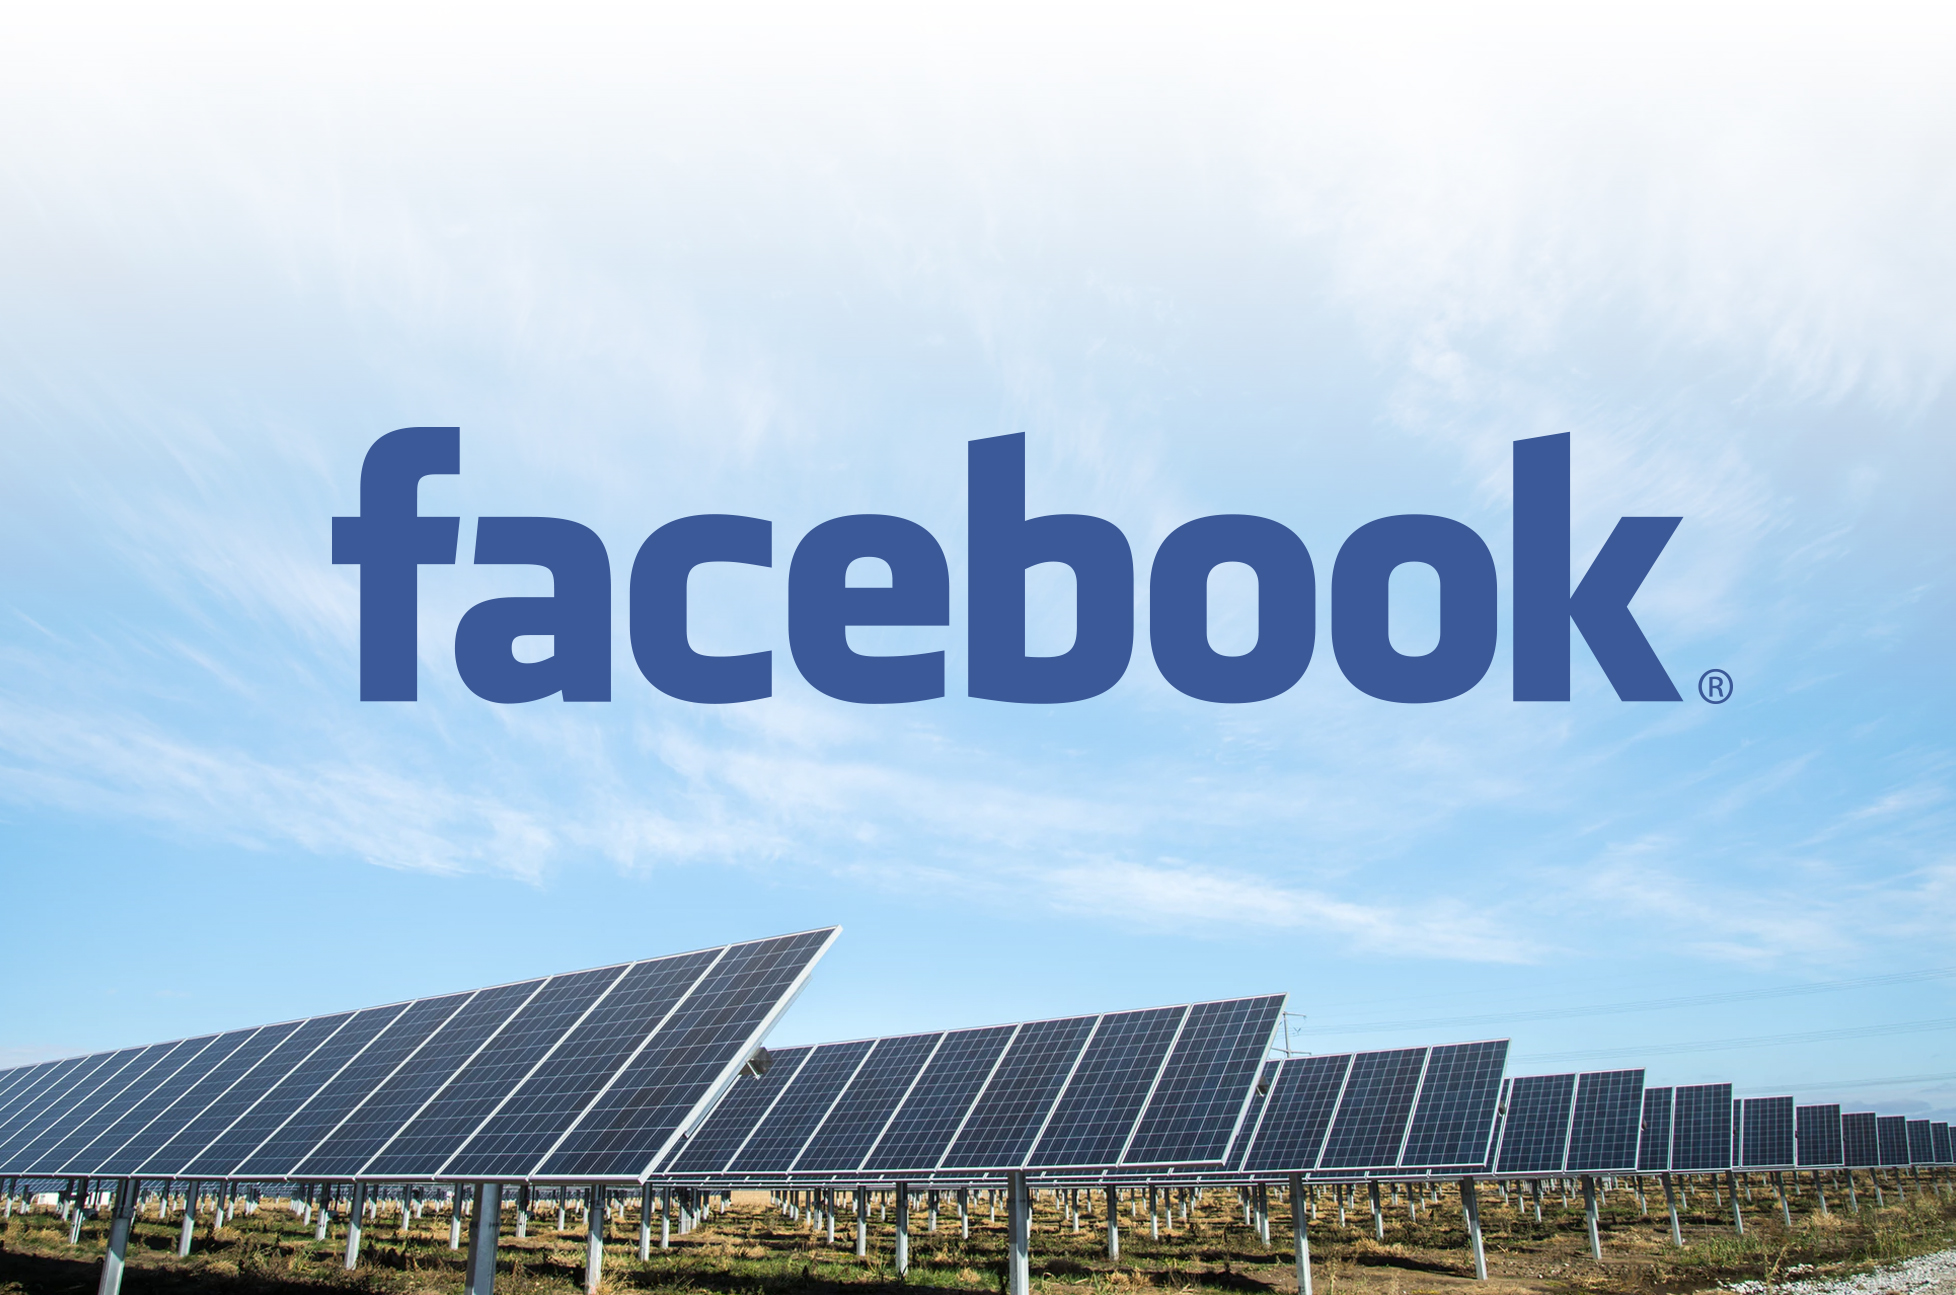 Facebook goes solar